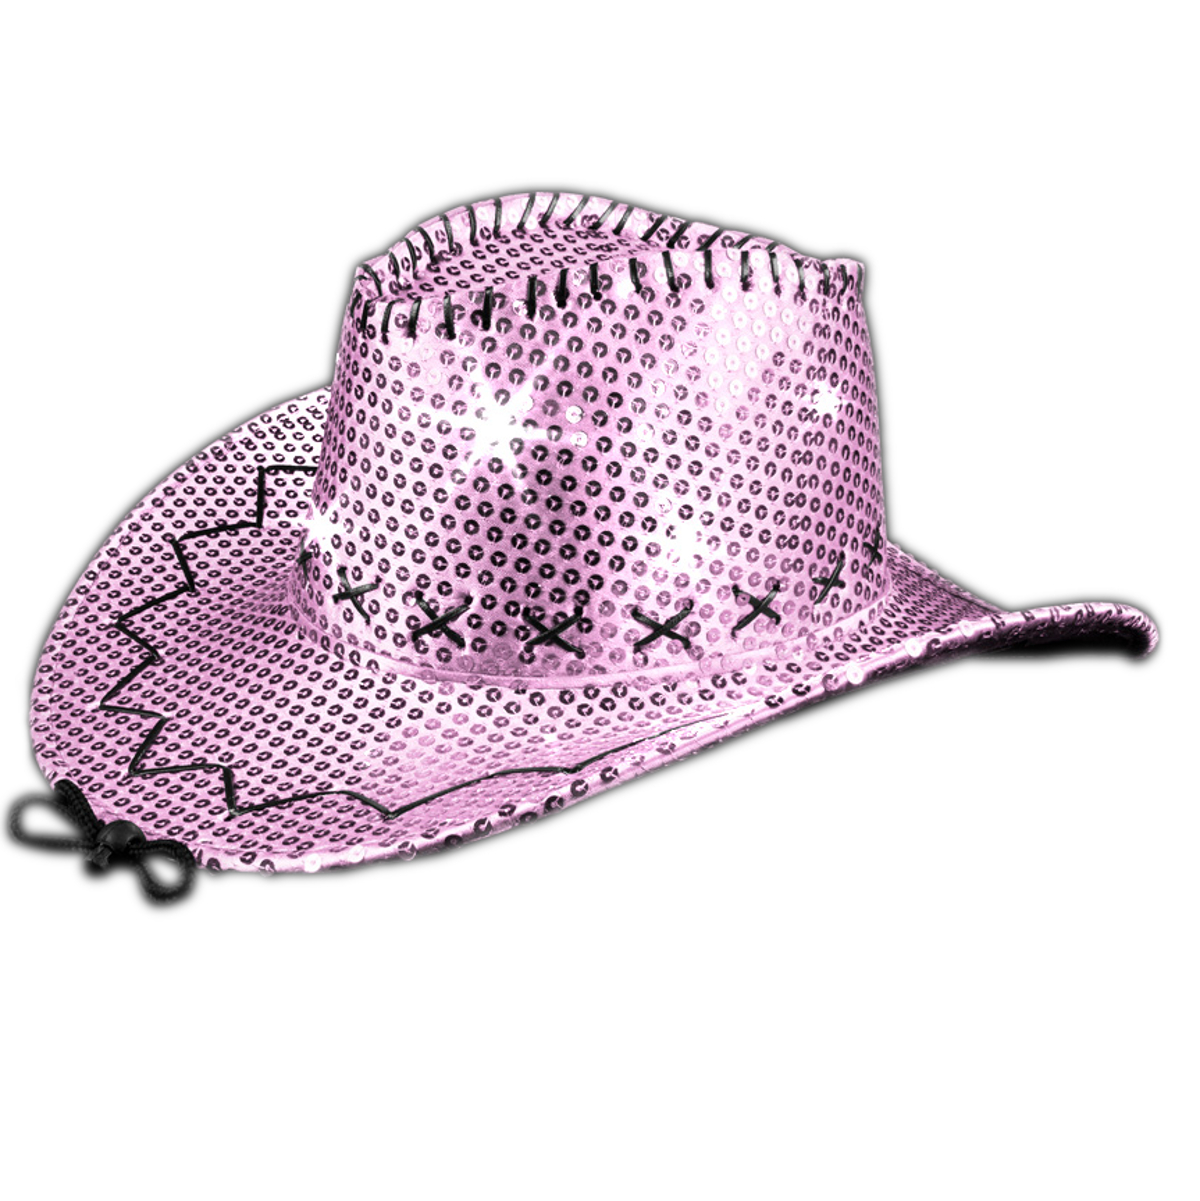 LED Sequin Cowboy Hat with Fancy Stitching Pink All Products